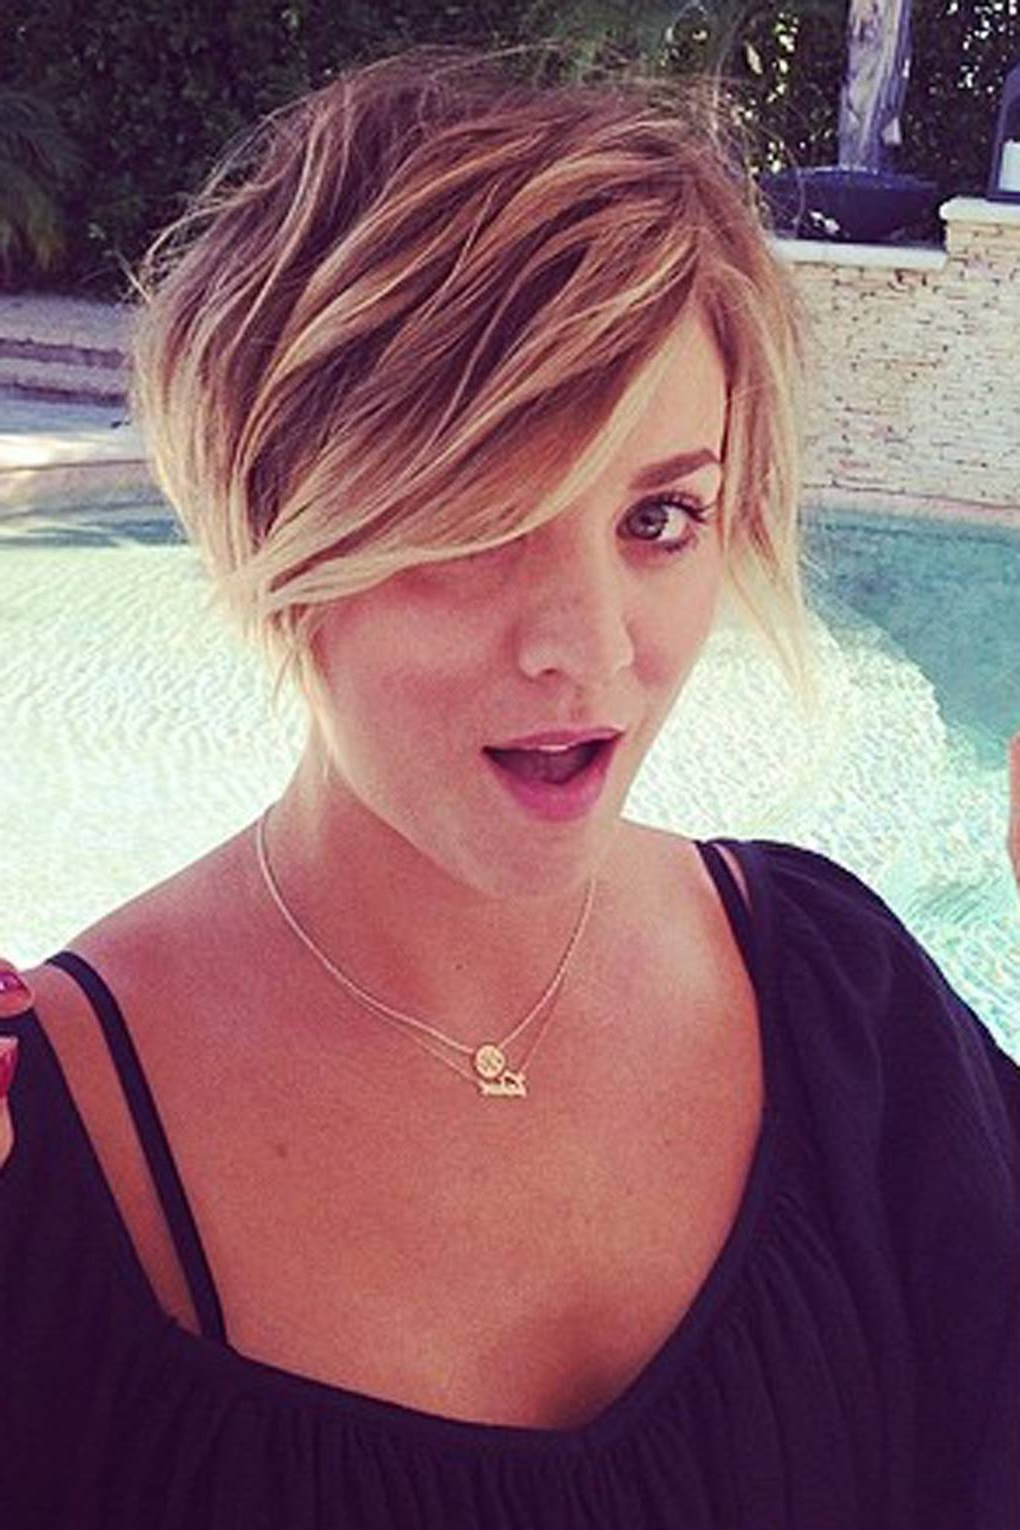 Kaley Cuoco Pixie Cut Hairstyle Photos | Glamour Uk Regarding Kaley Cuoco Short Hairstyles (View 11 of 25)